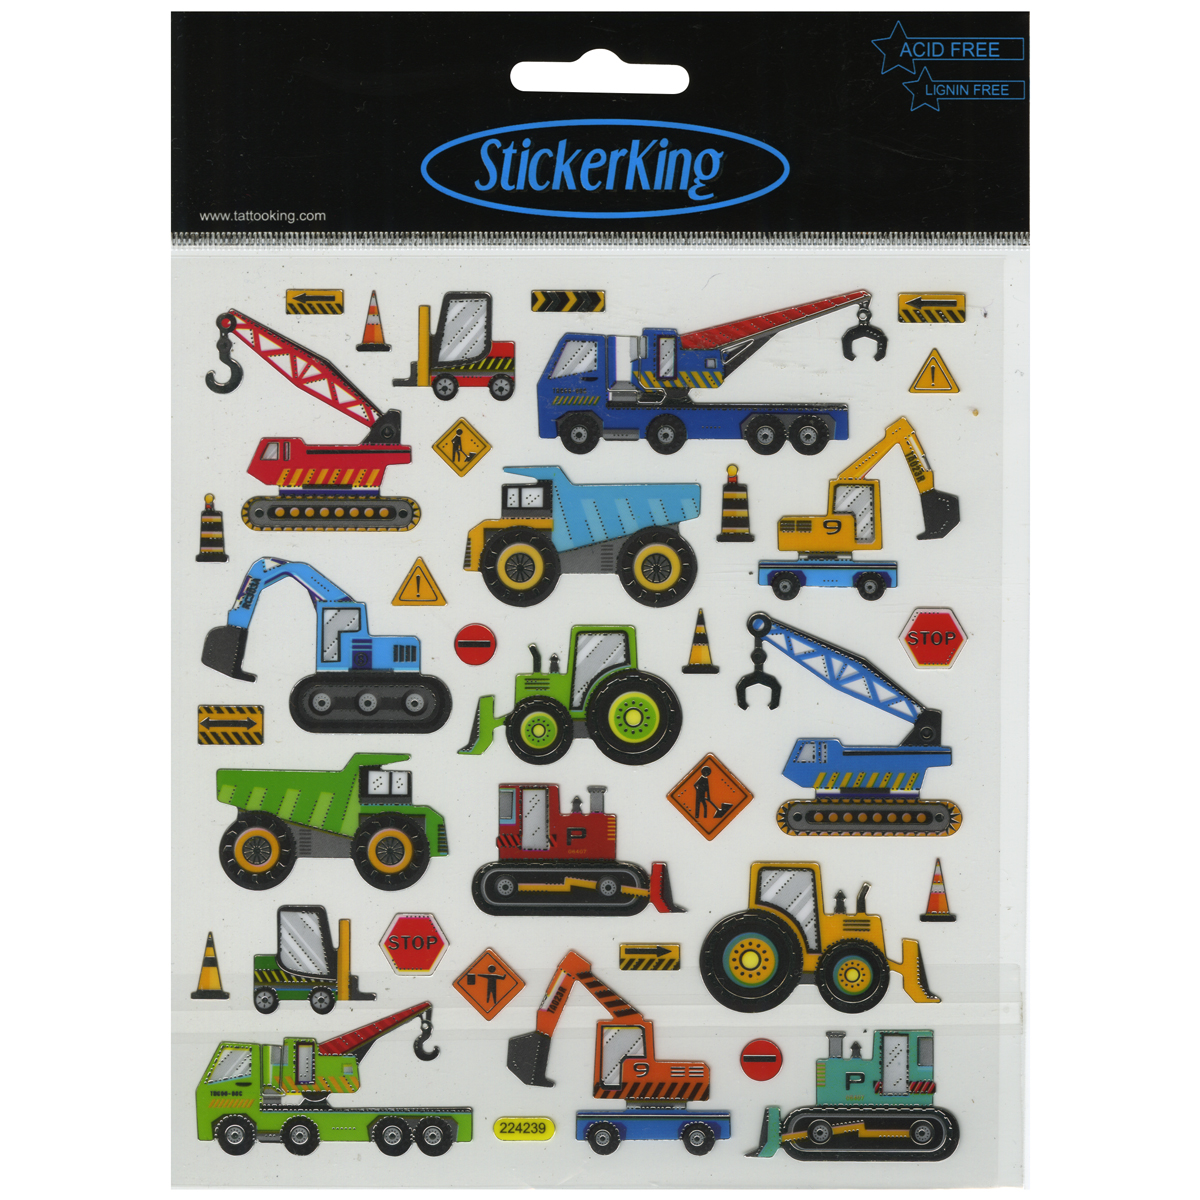 Sticker King Construction Vehicles Stickers